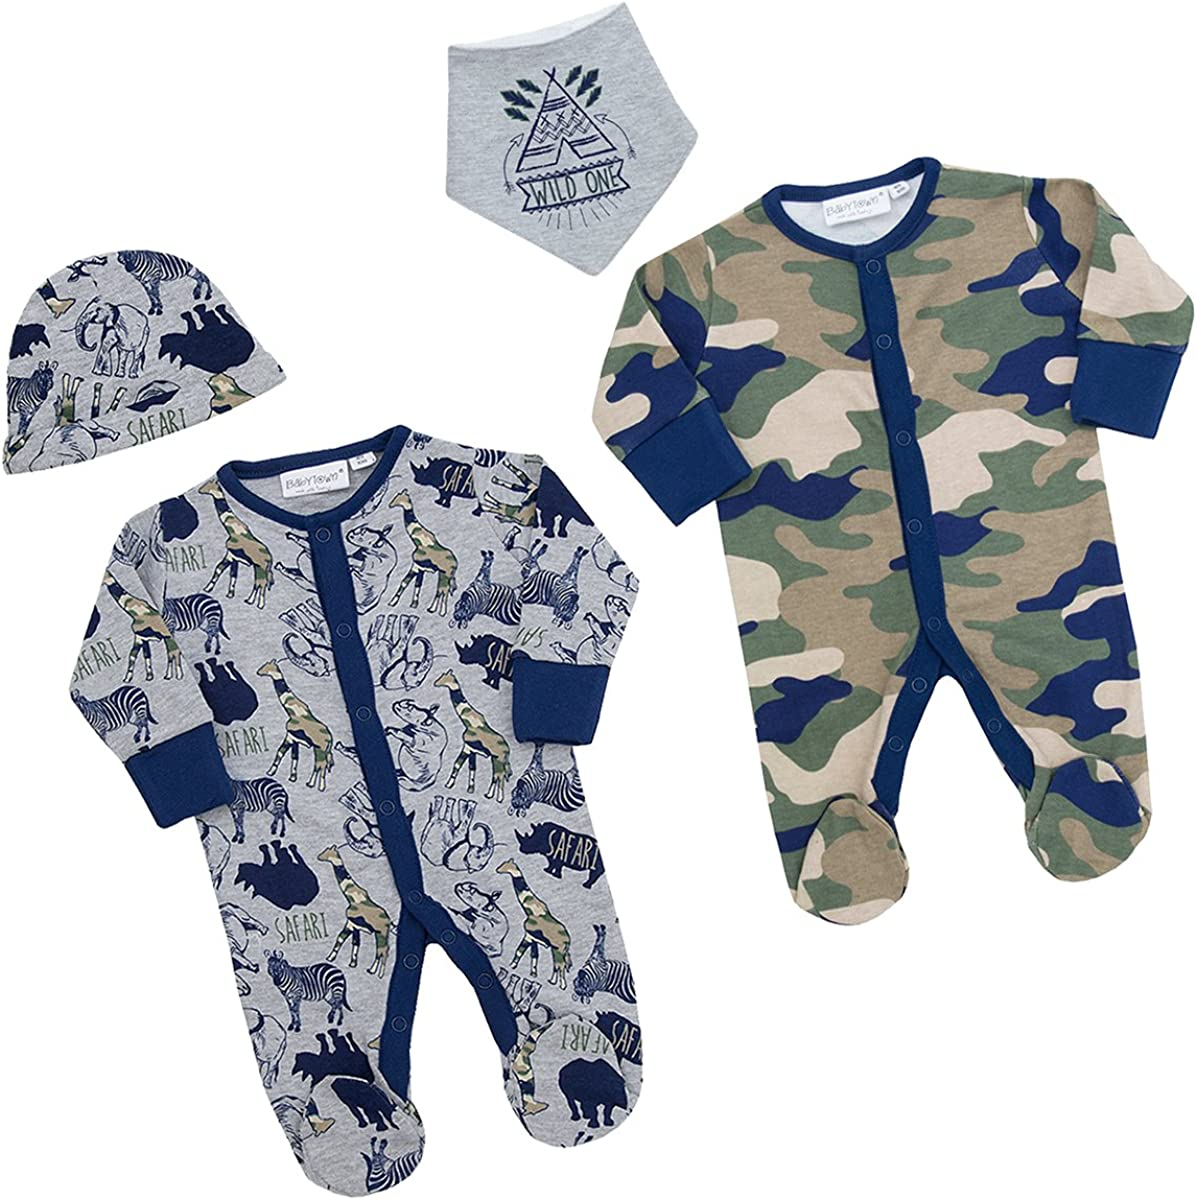 BABY TOWN Baby Boys Camo Safari Sleepsuit Newborn-9 Months Integrated Scratch Mittens Cotton Rich All-in-One